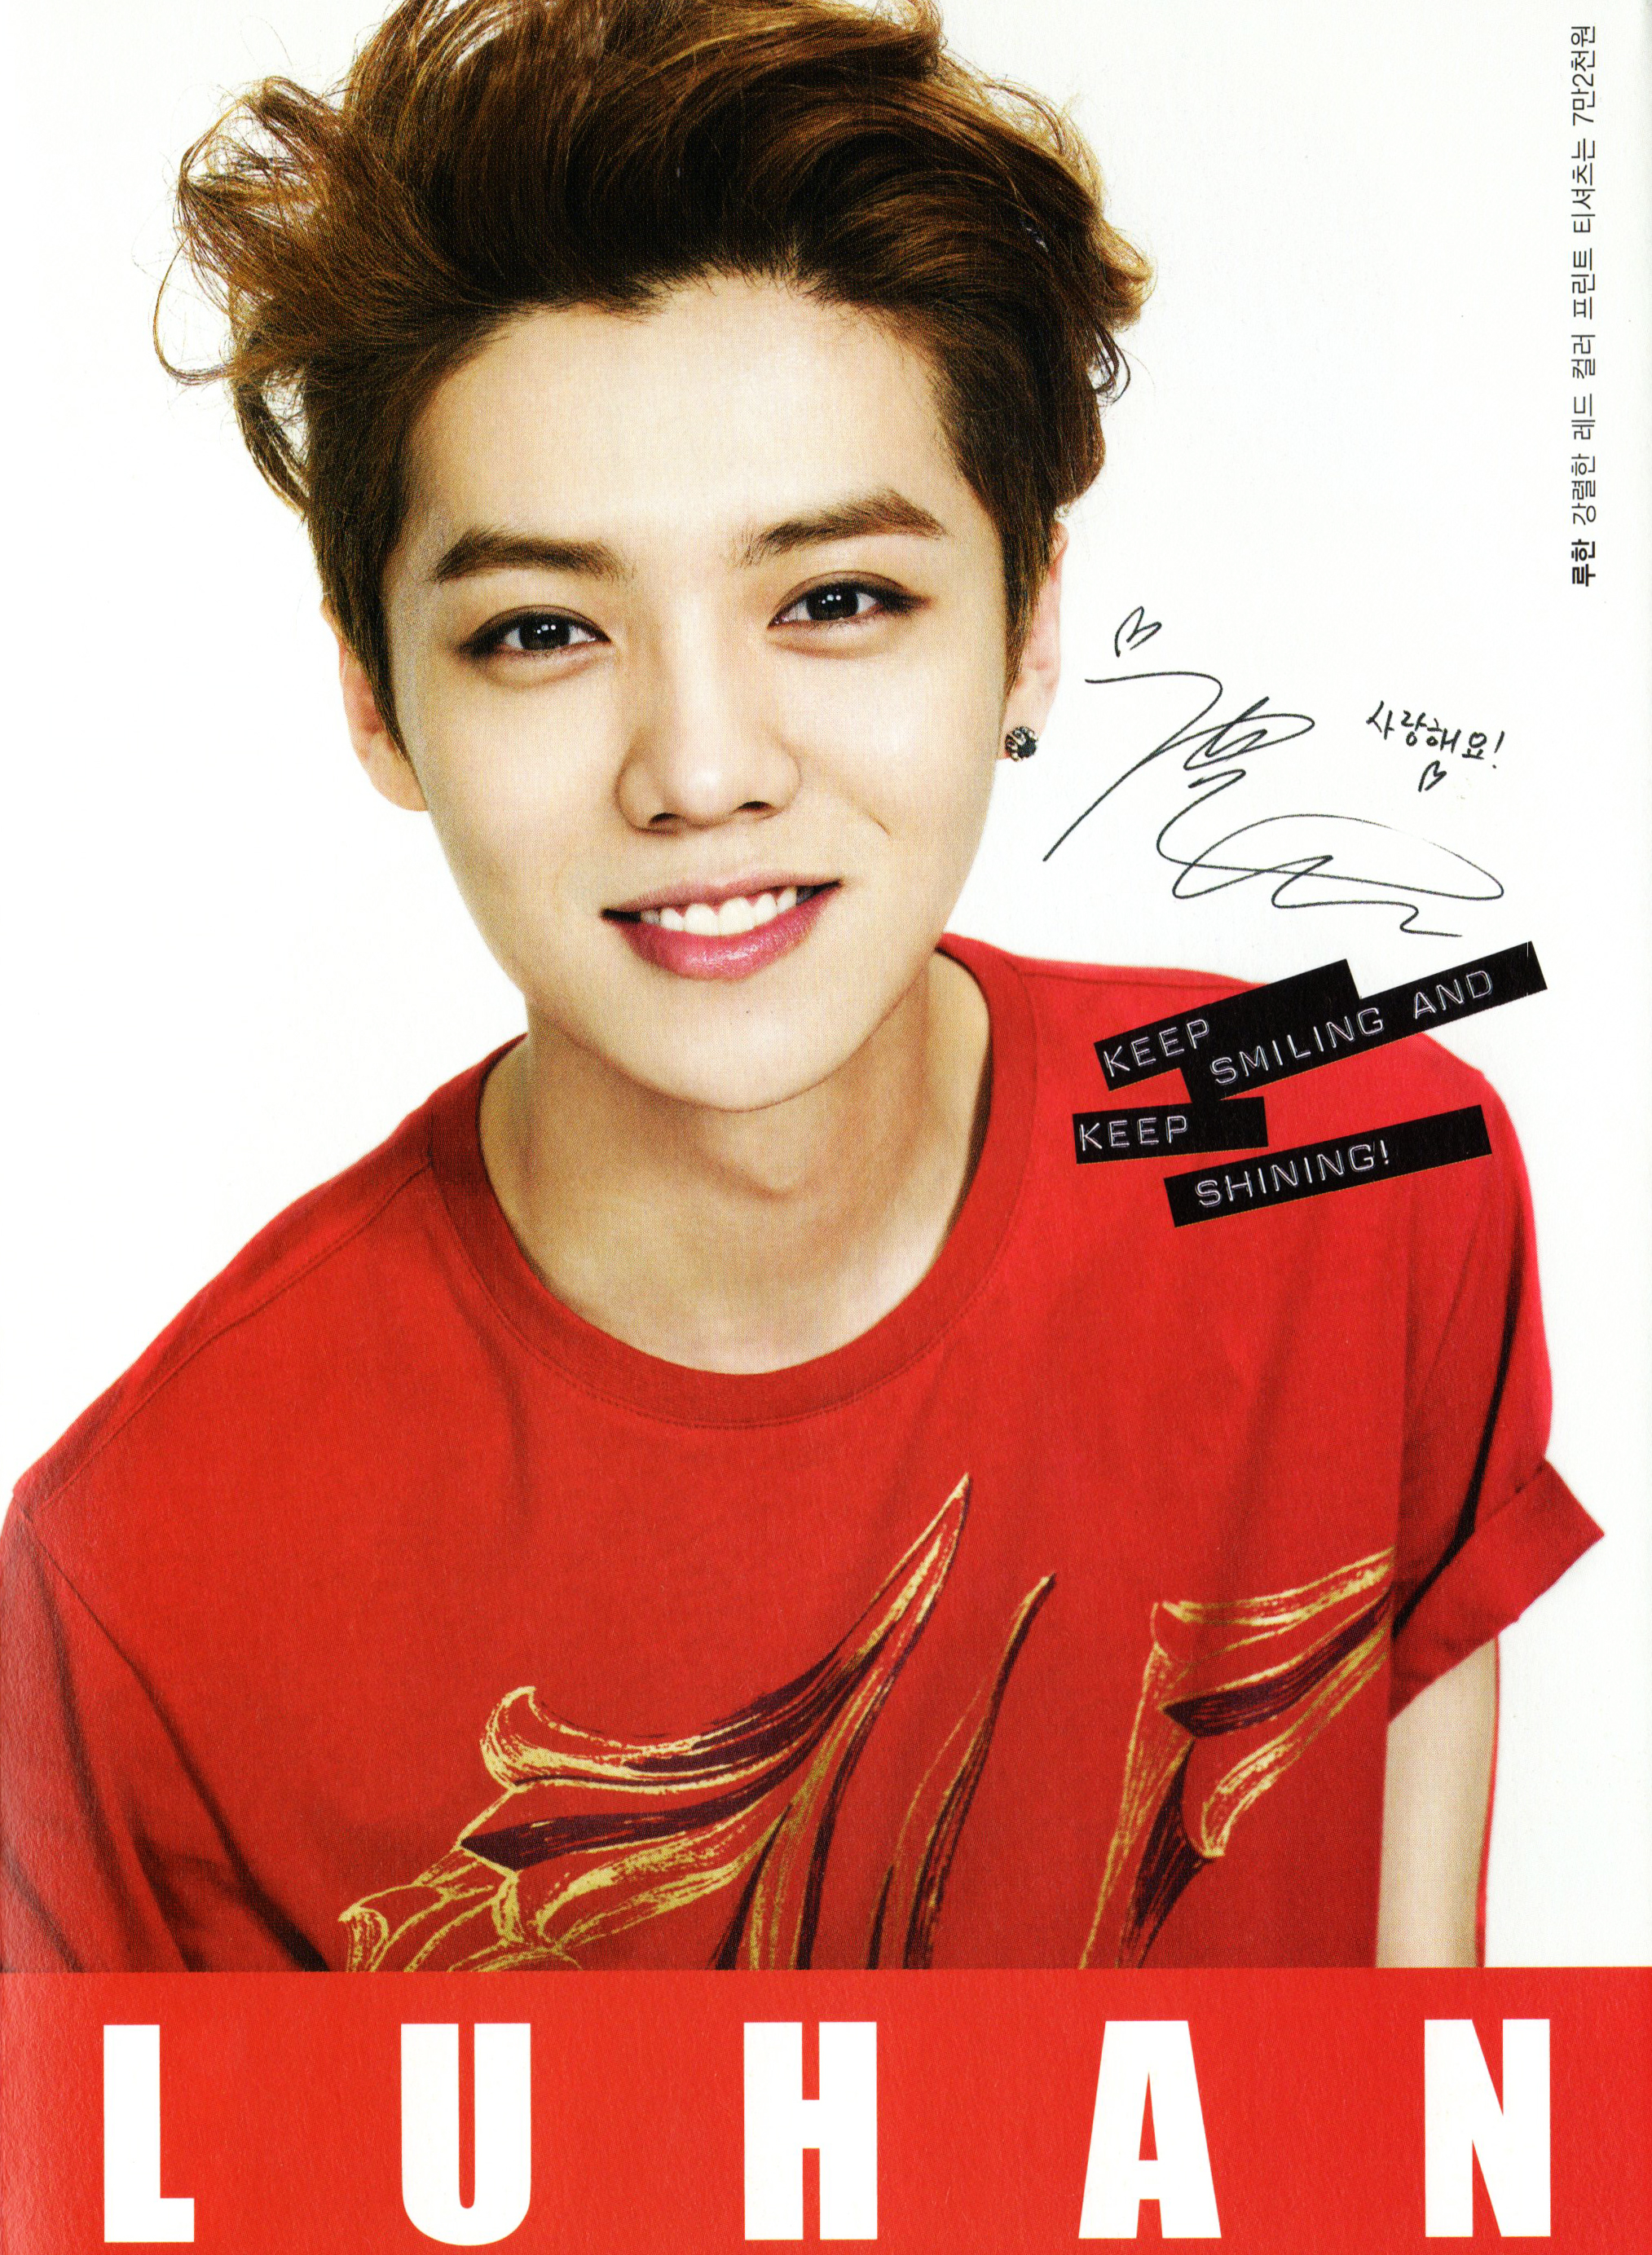 EXO-M Wallpaper: Luhan Wallpaper - fanpop.com